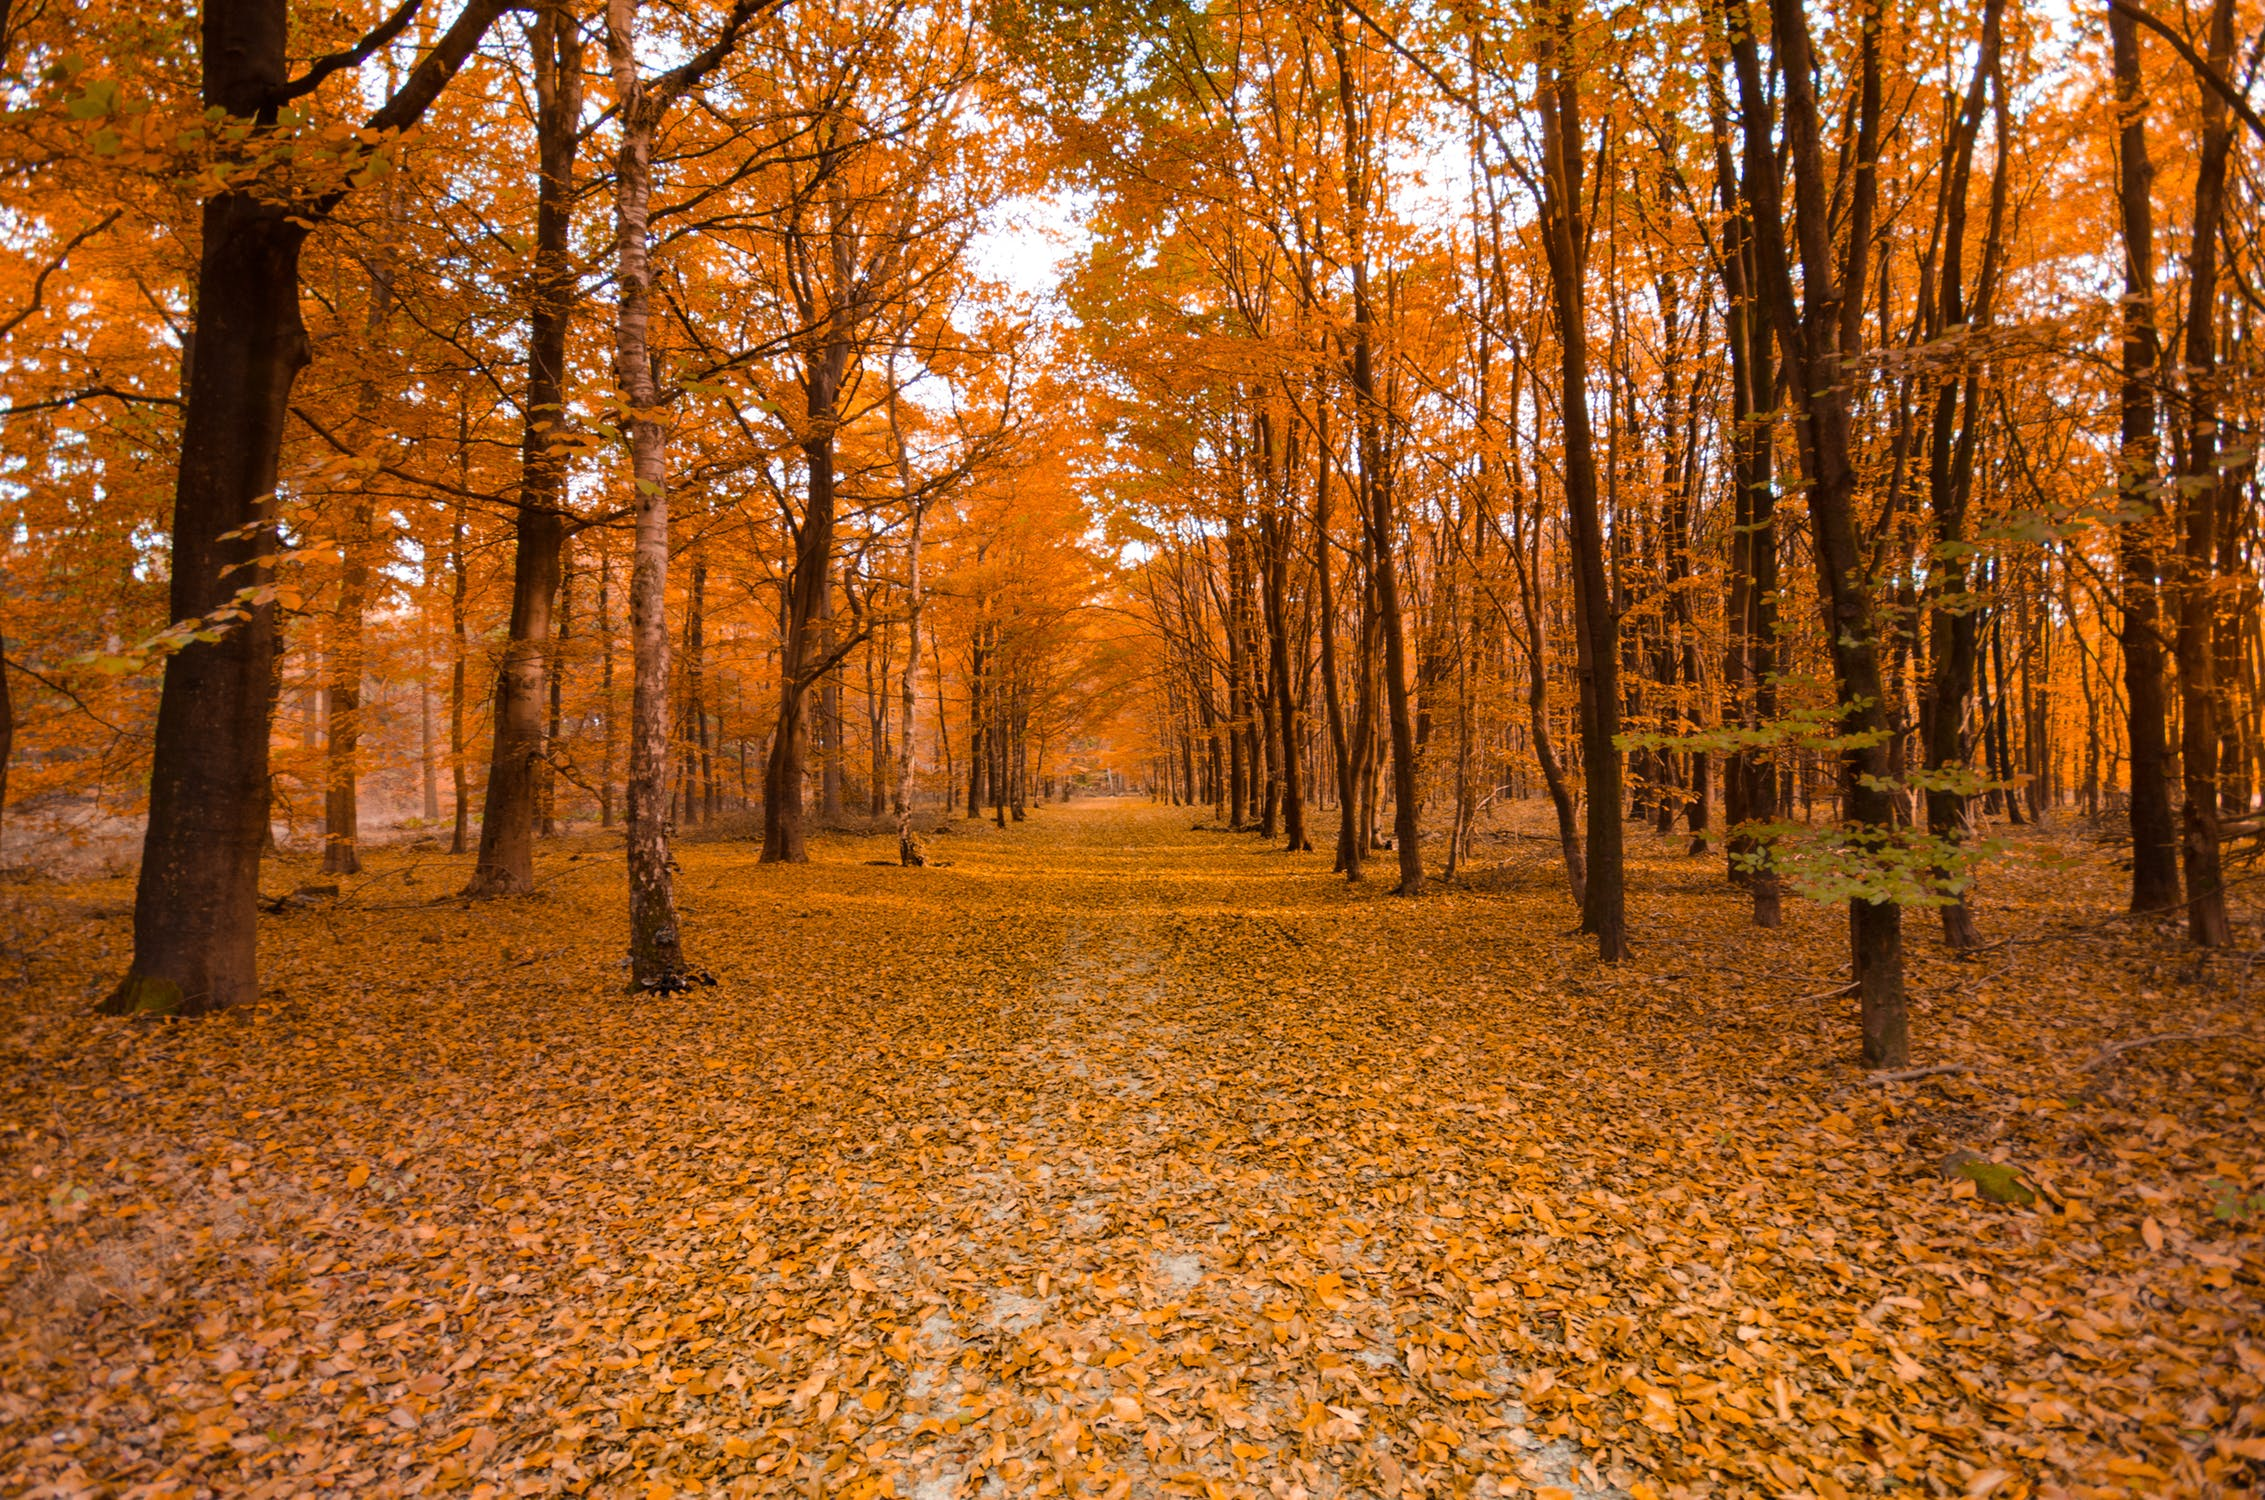 forest-autumn-orange-colorful-699624